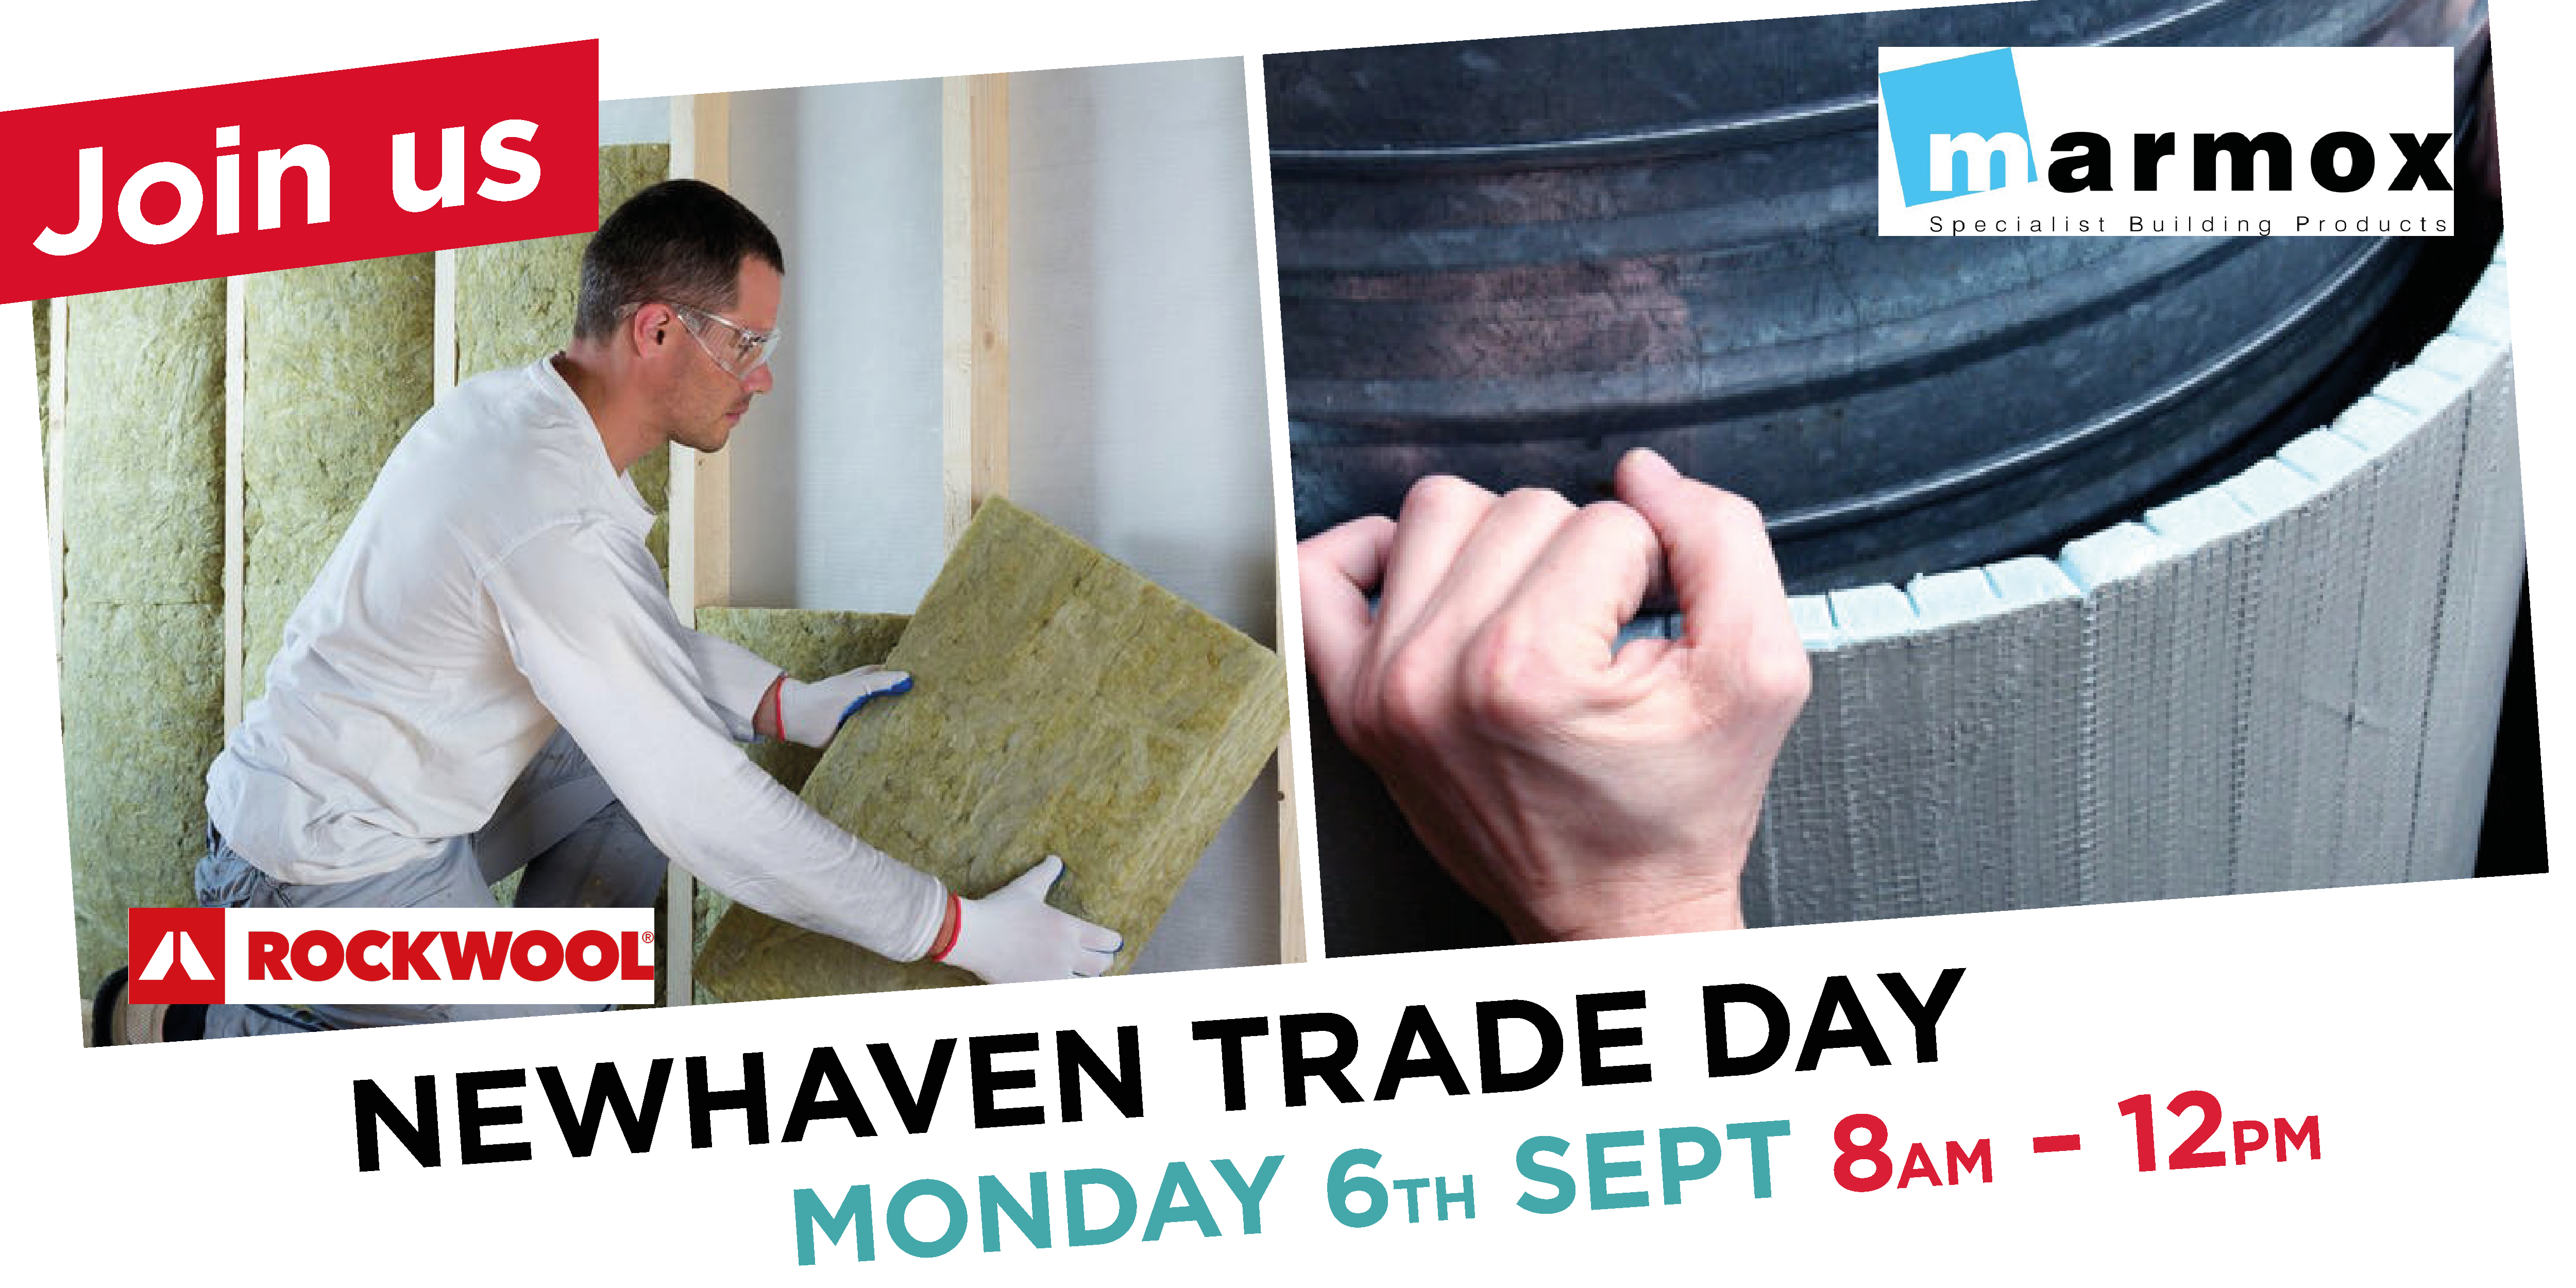 Newhaven Trade Day Announced for September